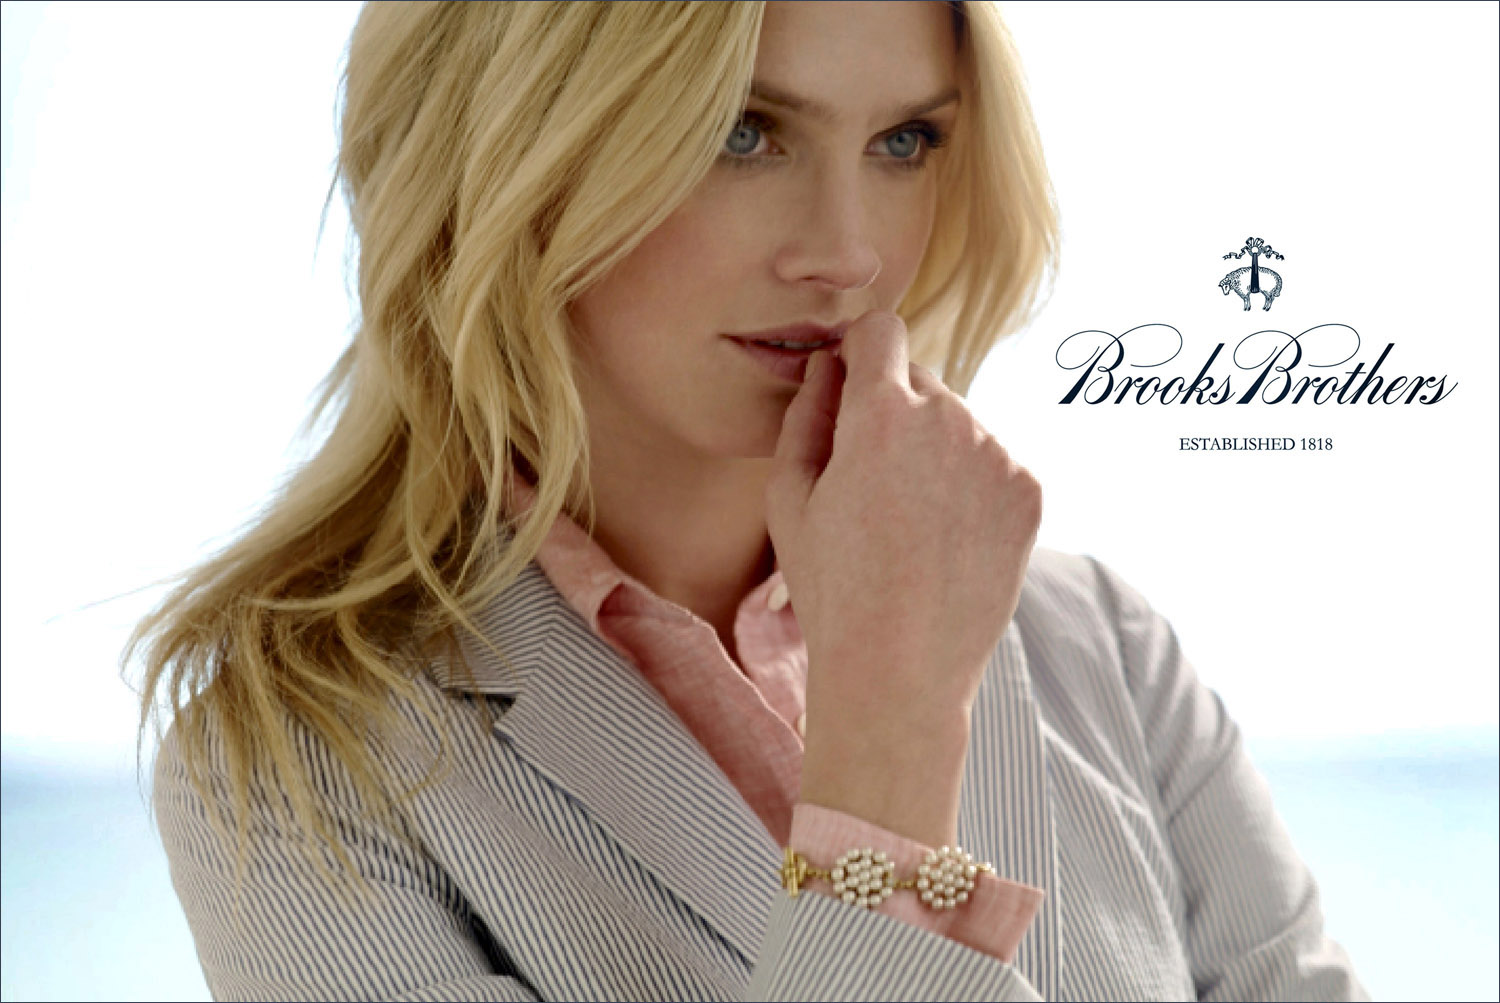 Brooks Brothers - Spring/Summer 2014